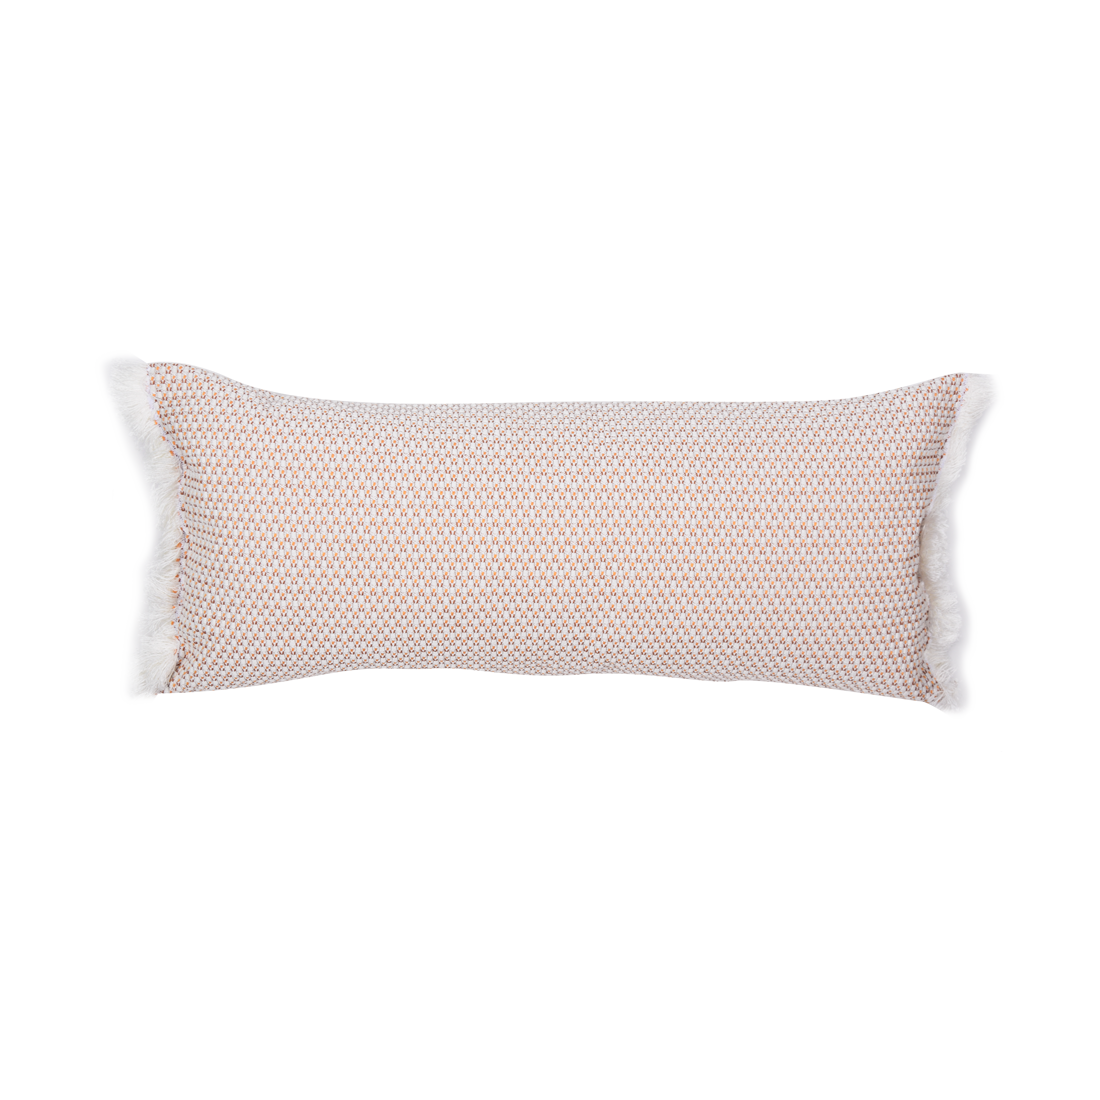 EVASION / 2694 OUTDOOR CUSHION 35X70CM